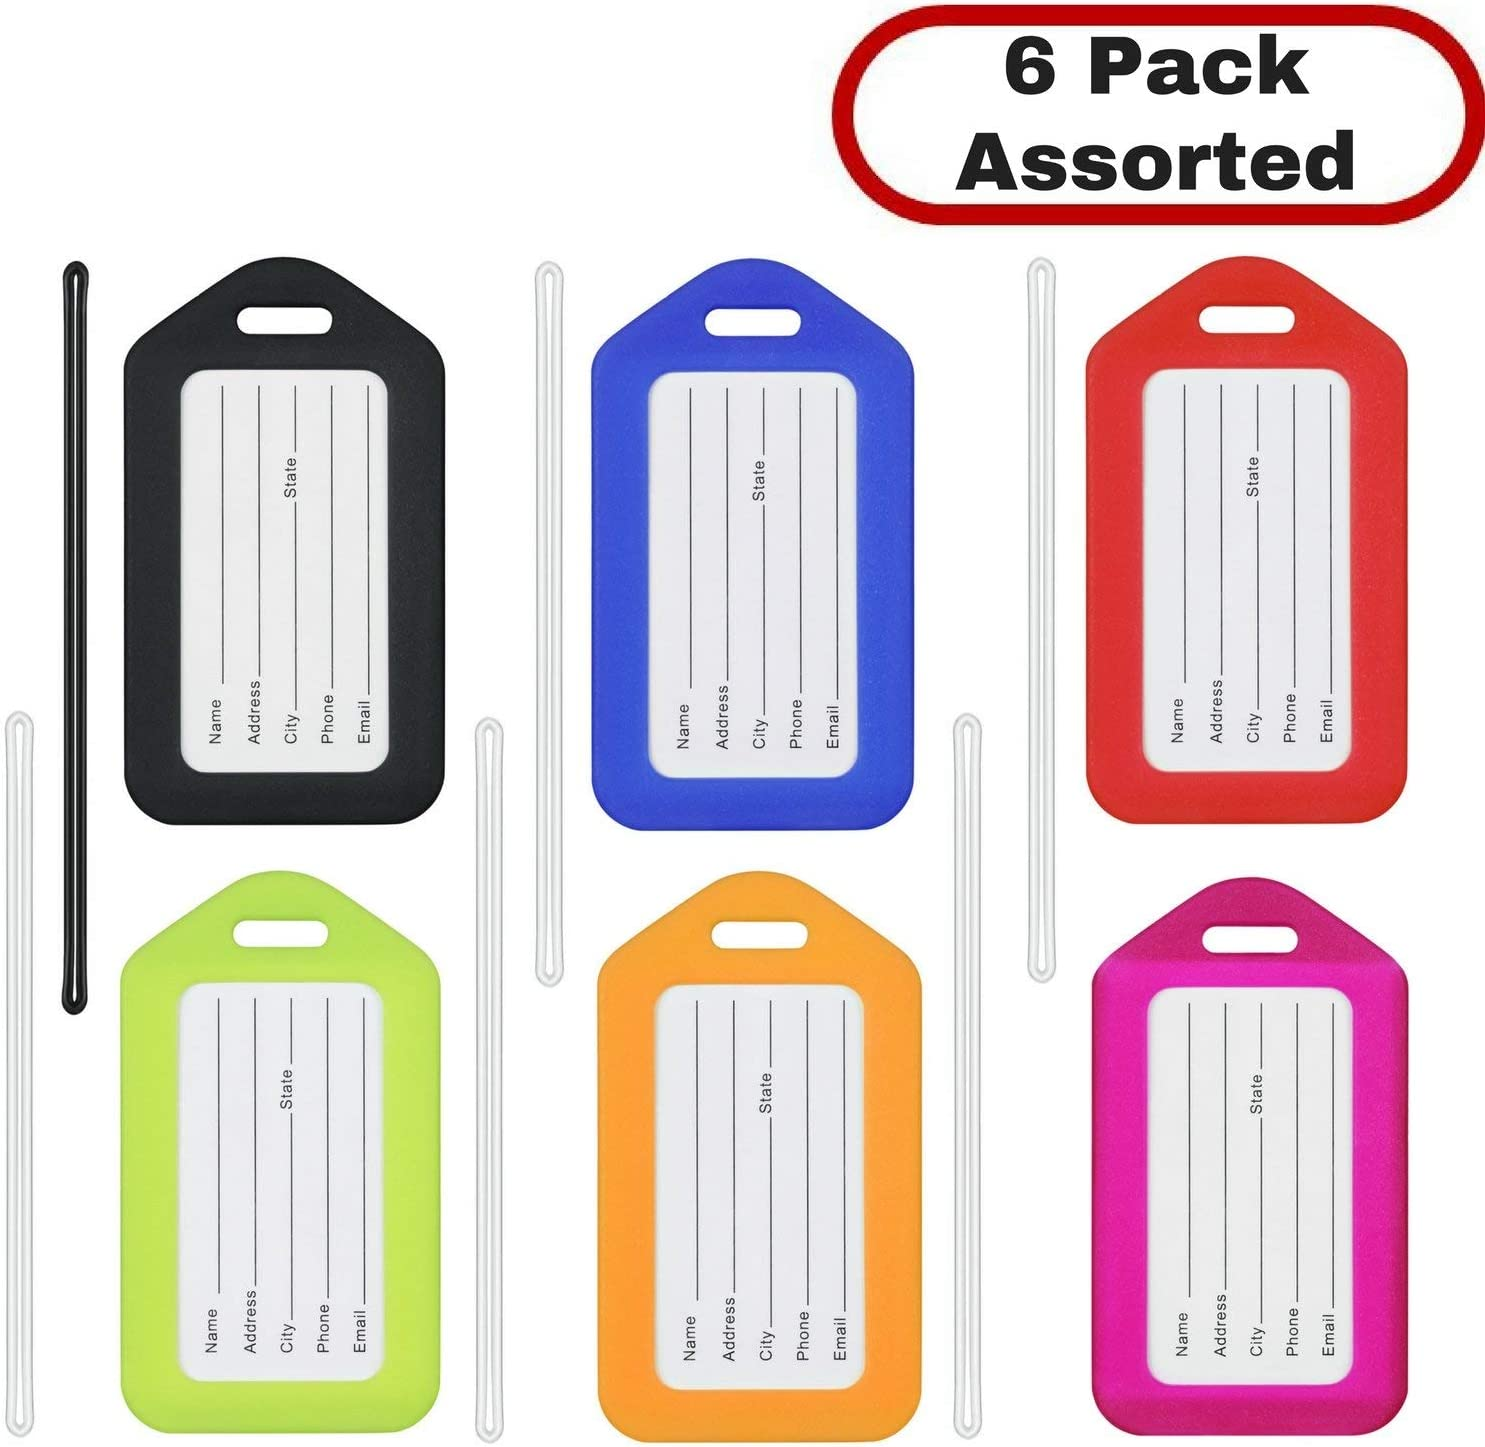 MIFFLIN Luggage Tags (Assorted, 6 PK), Bag Tag for Baggage, Suitcase Tags Bulk: Office Products